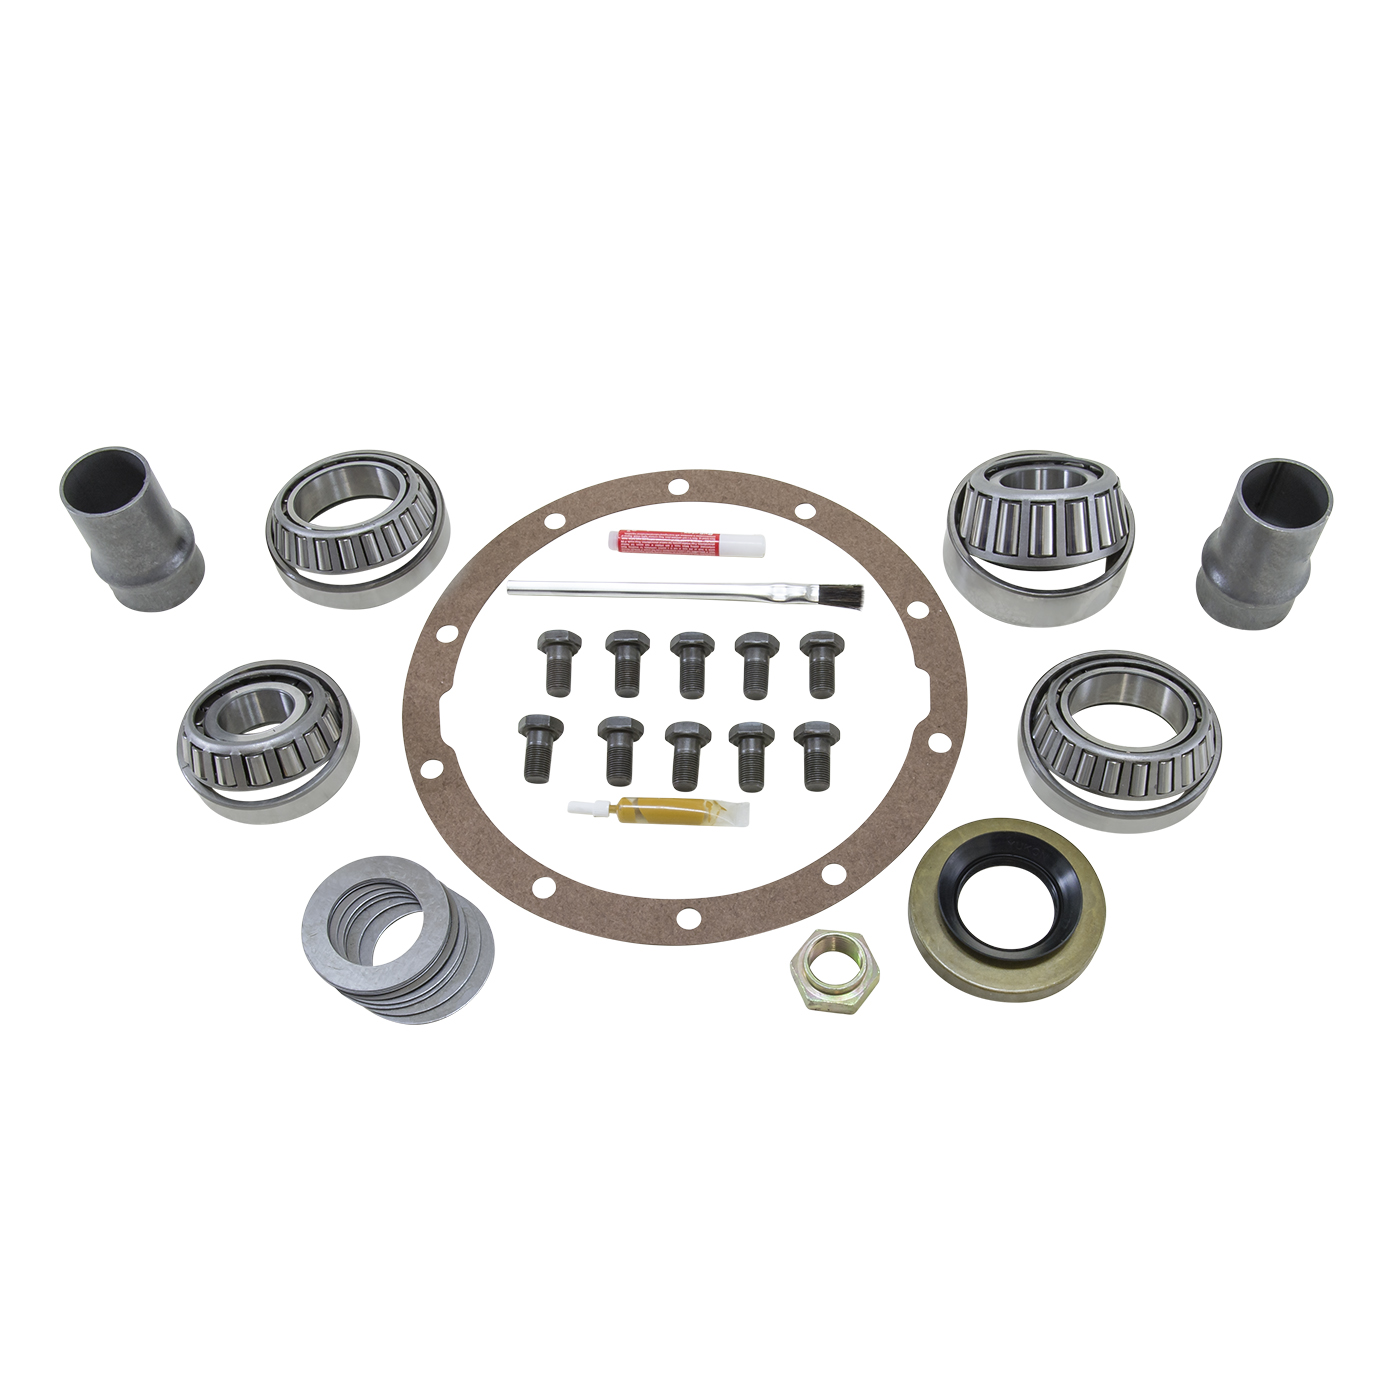 USA Standard Bearing Install Kit for 11 /& Up Chrysler 9.25 ZF Rear